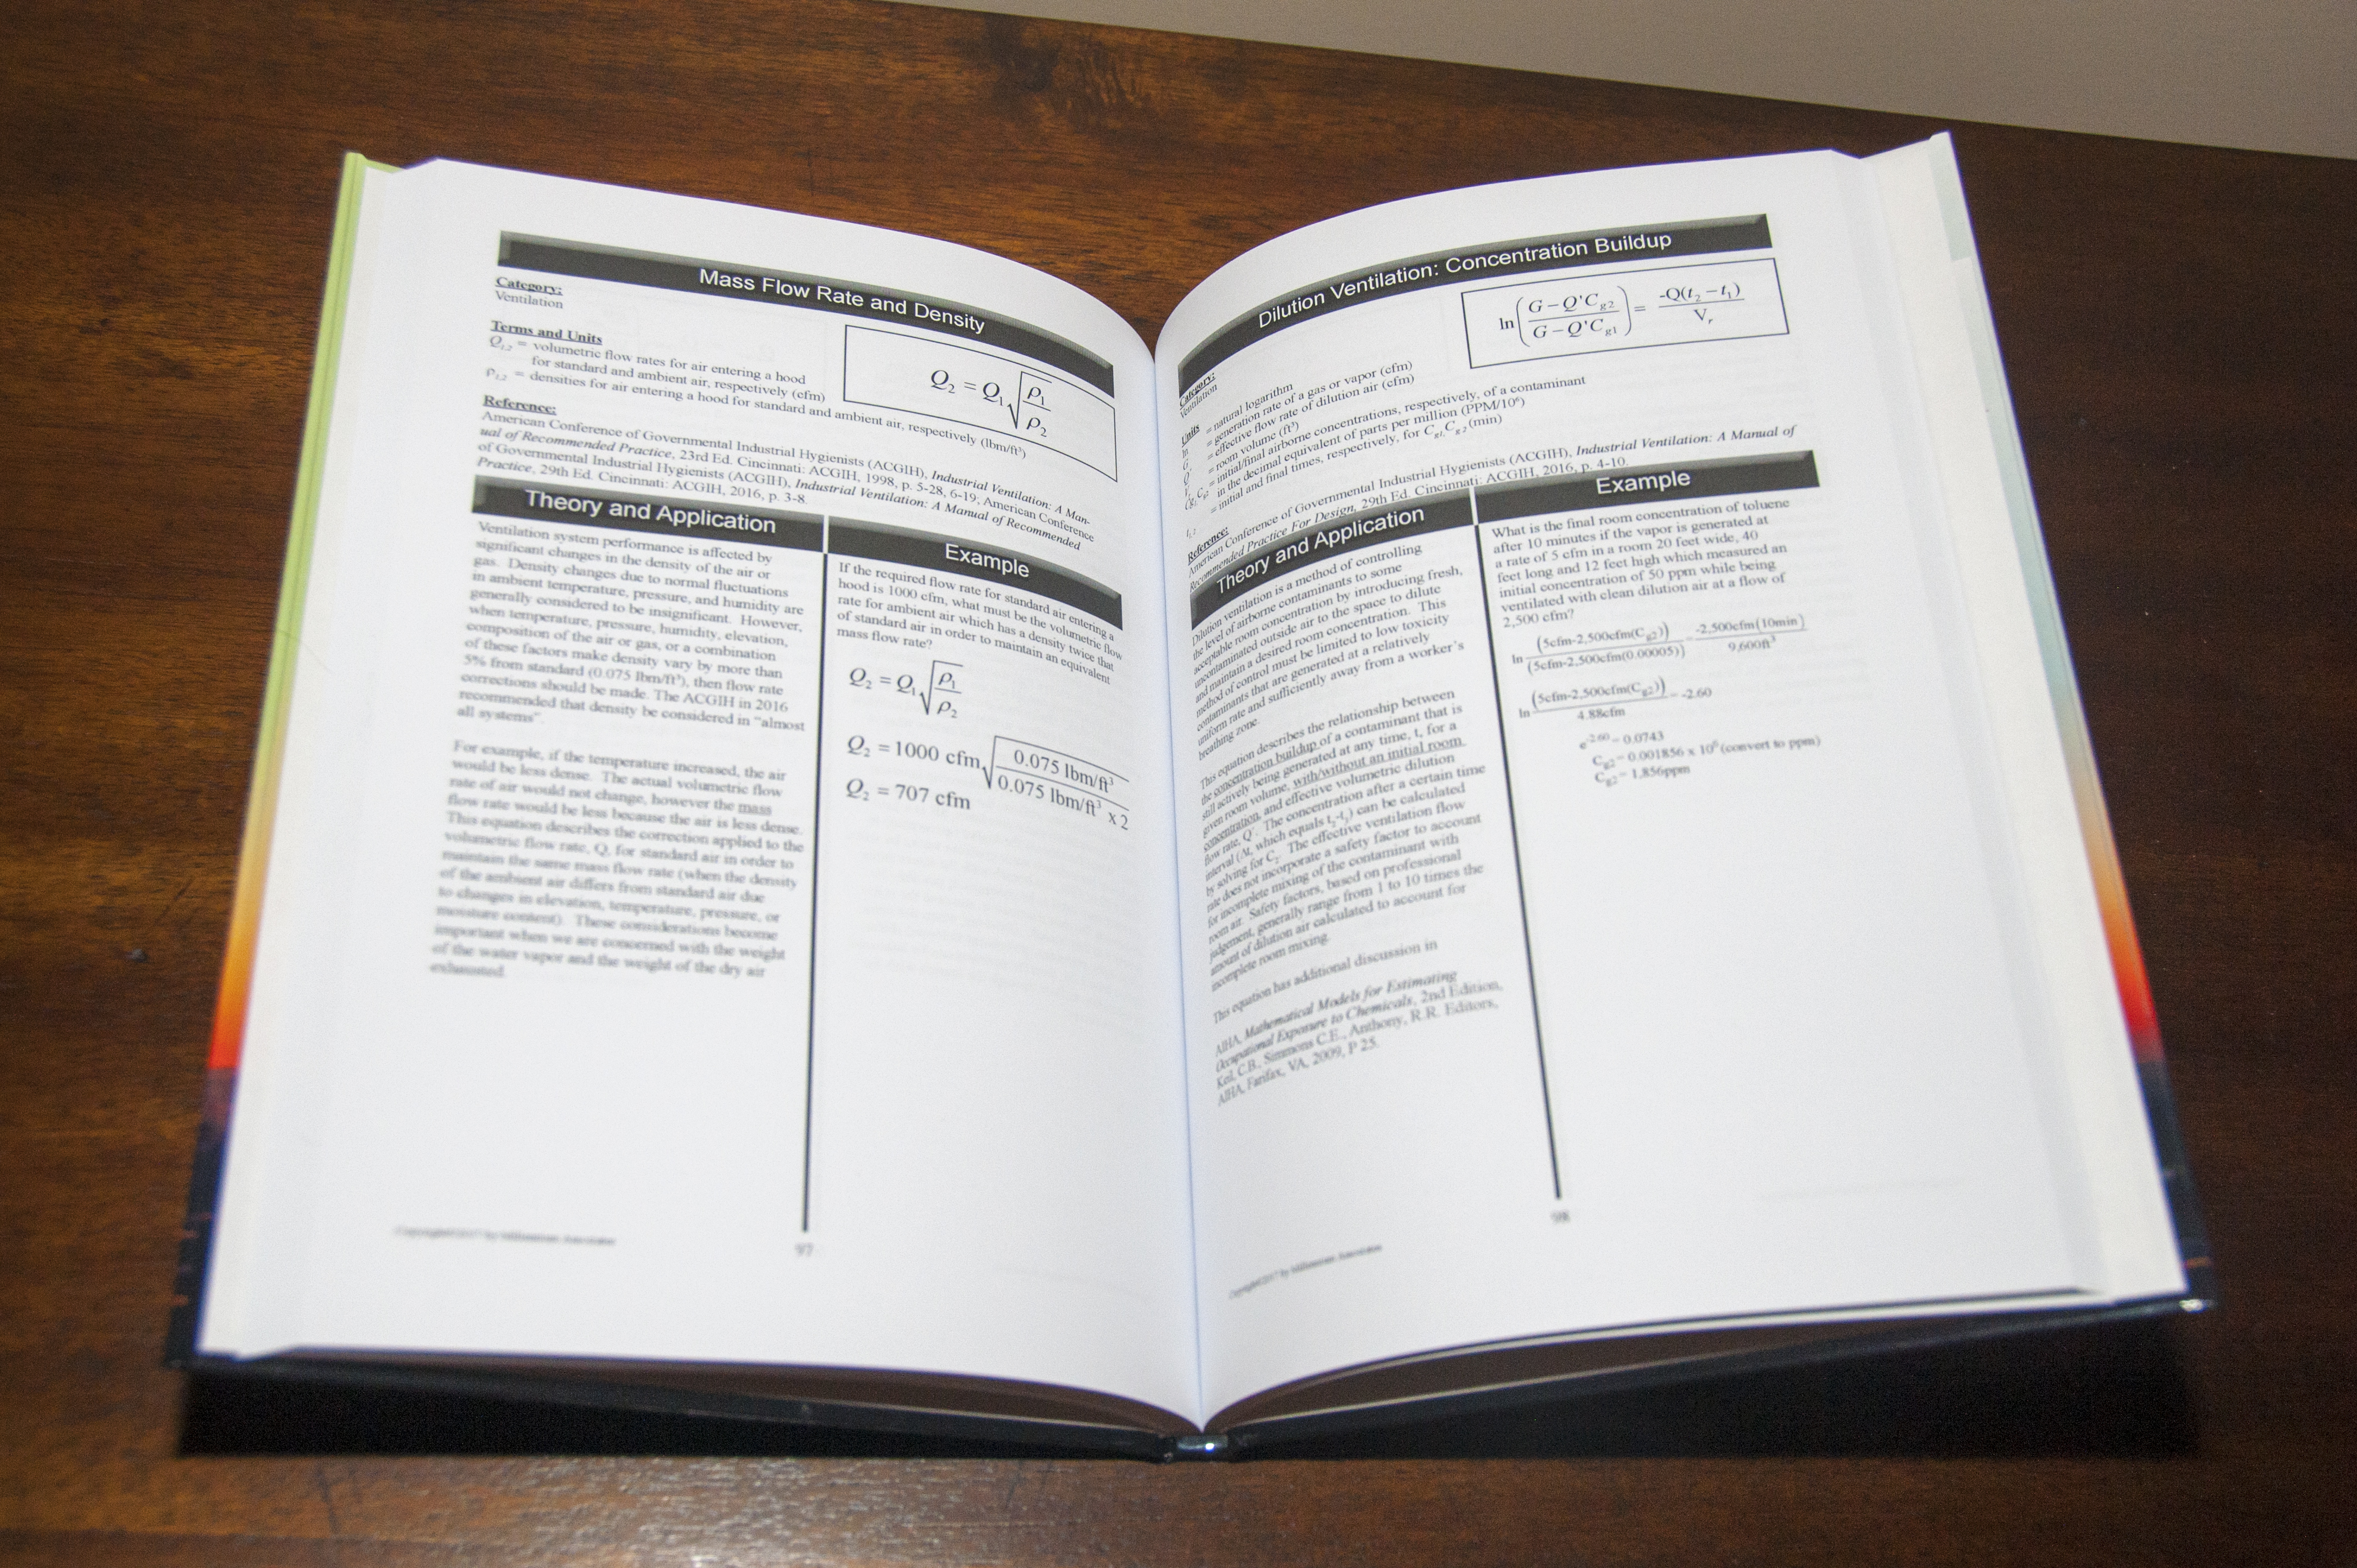 Cih roh csp asp formulas quantitativel reference book intuitive easy to use layout 1betcityfo Choice Image